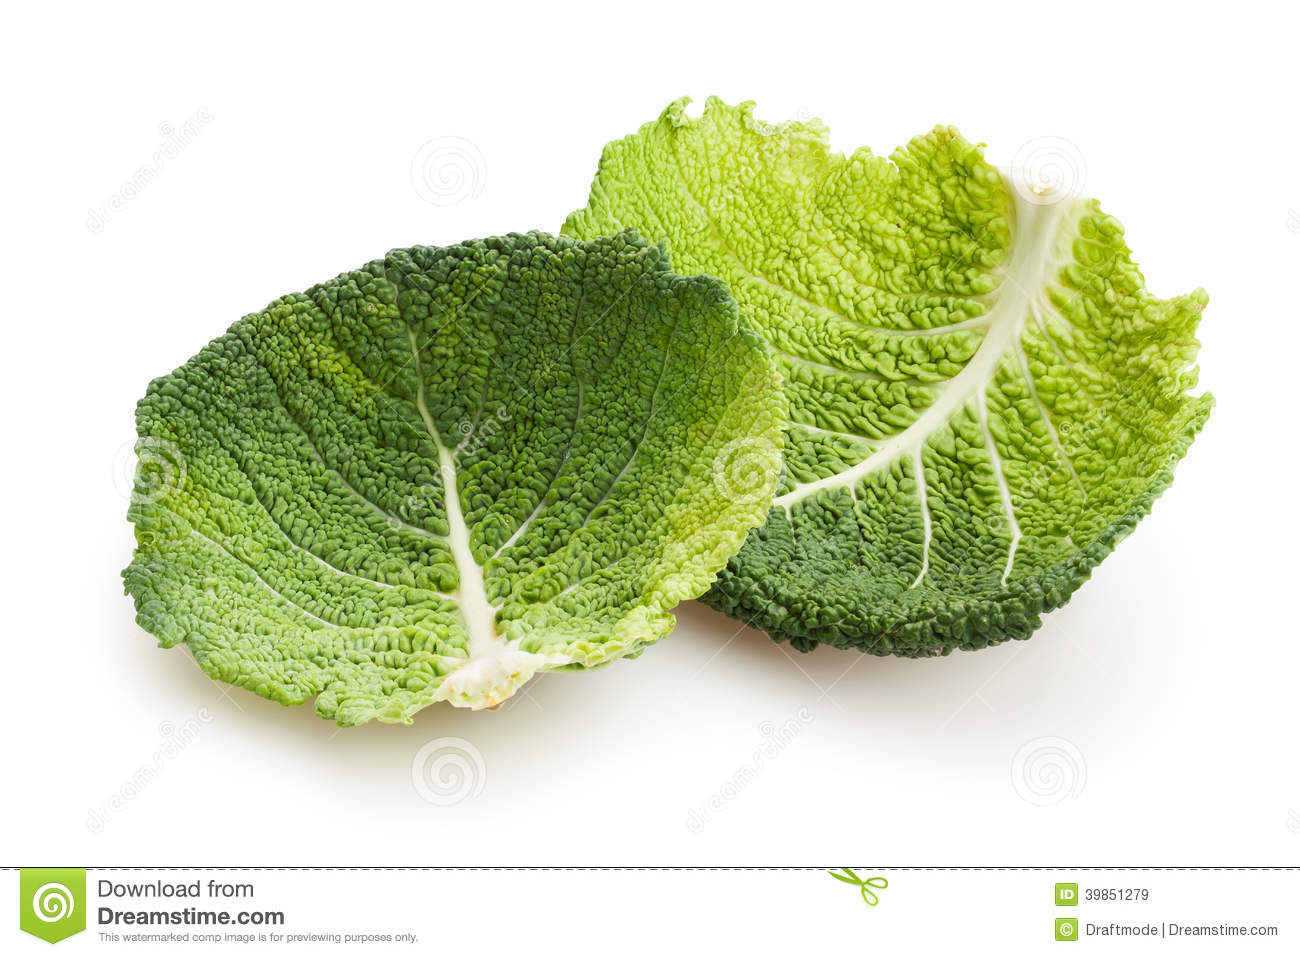 Savoy Cabbage Leaves Stock Image Image Of Textured Vegetation 39851279